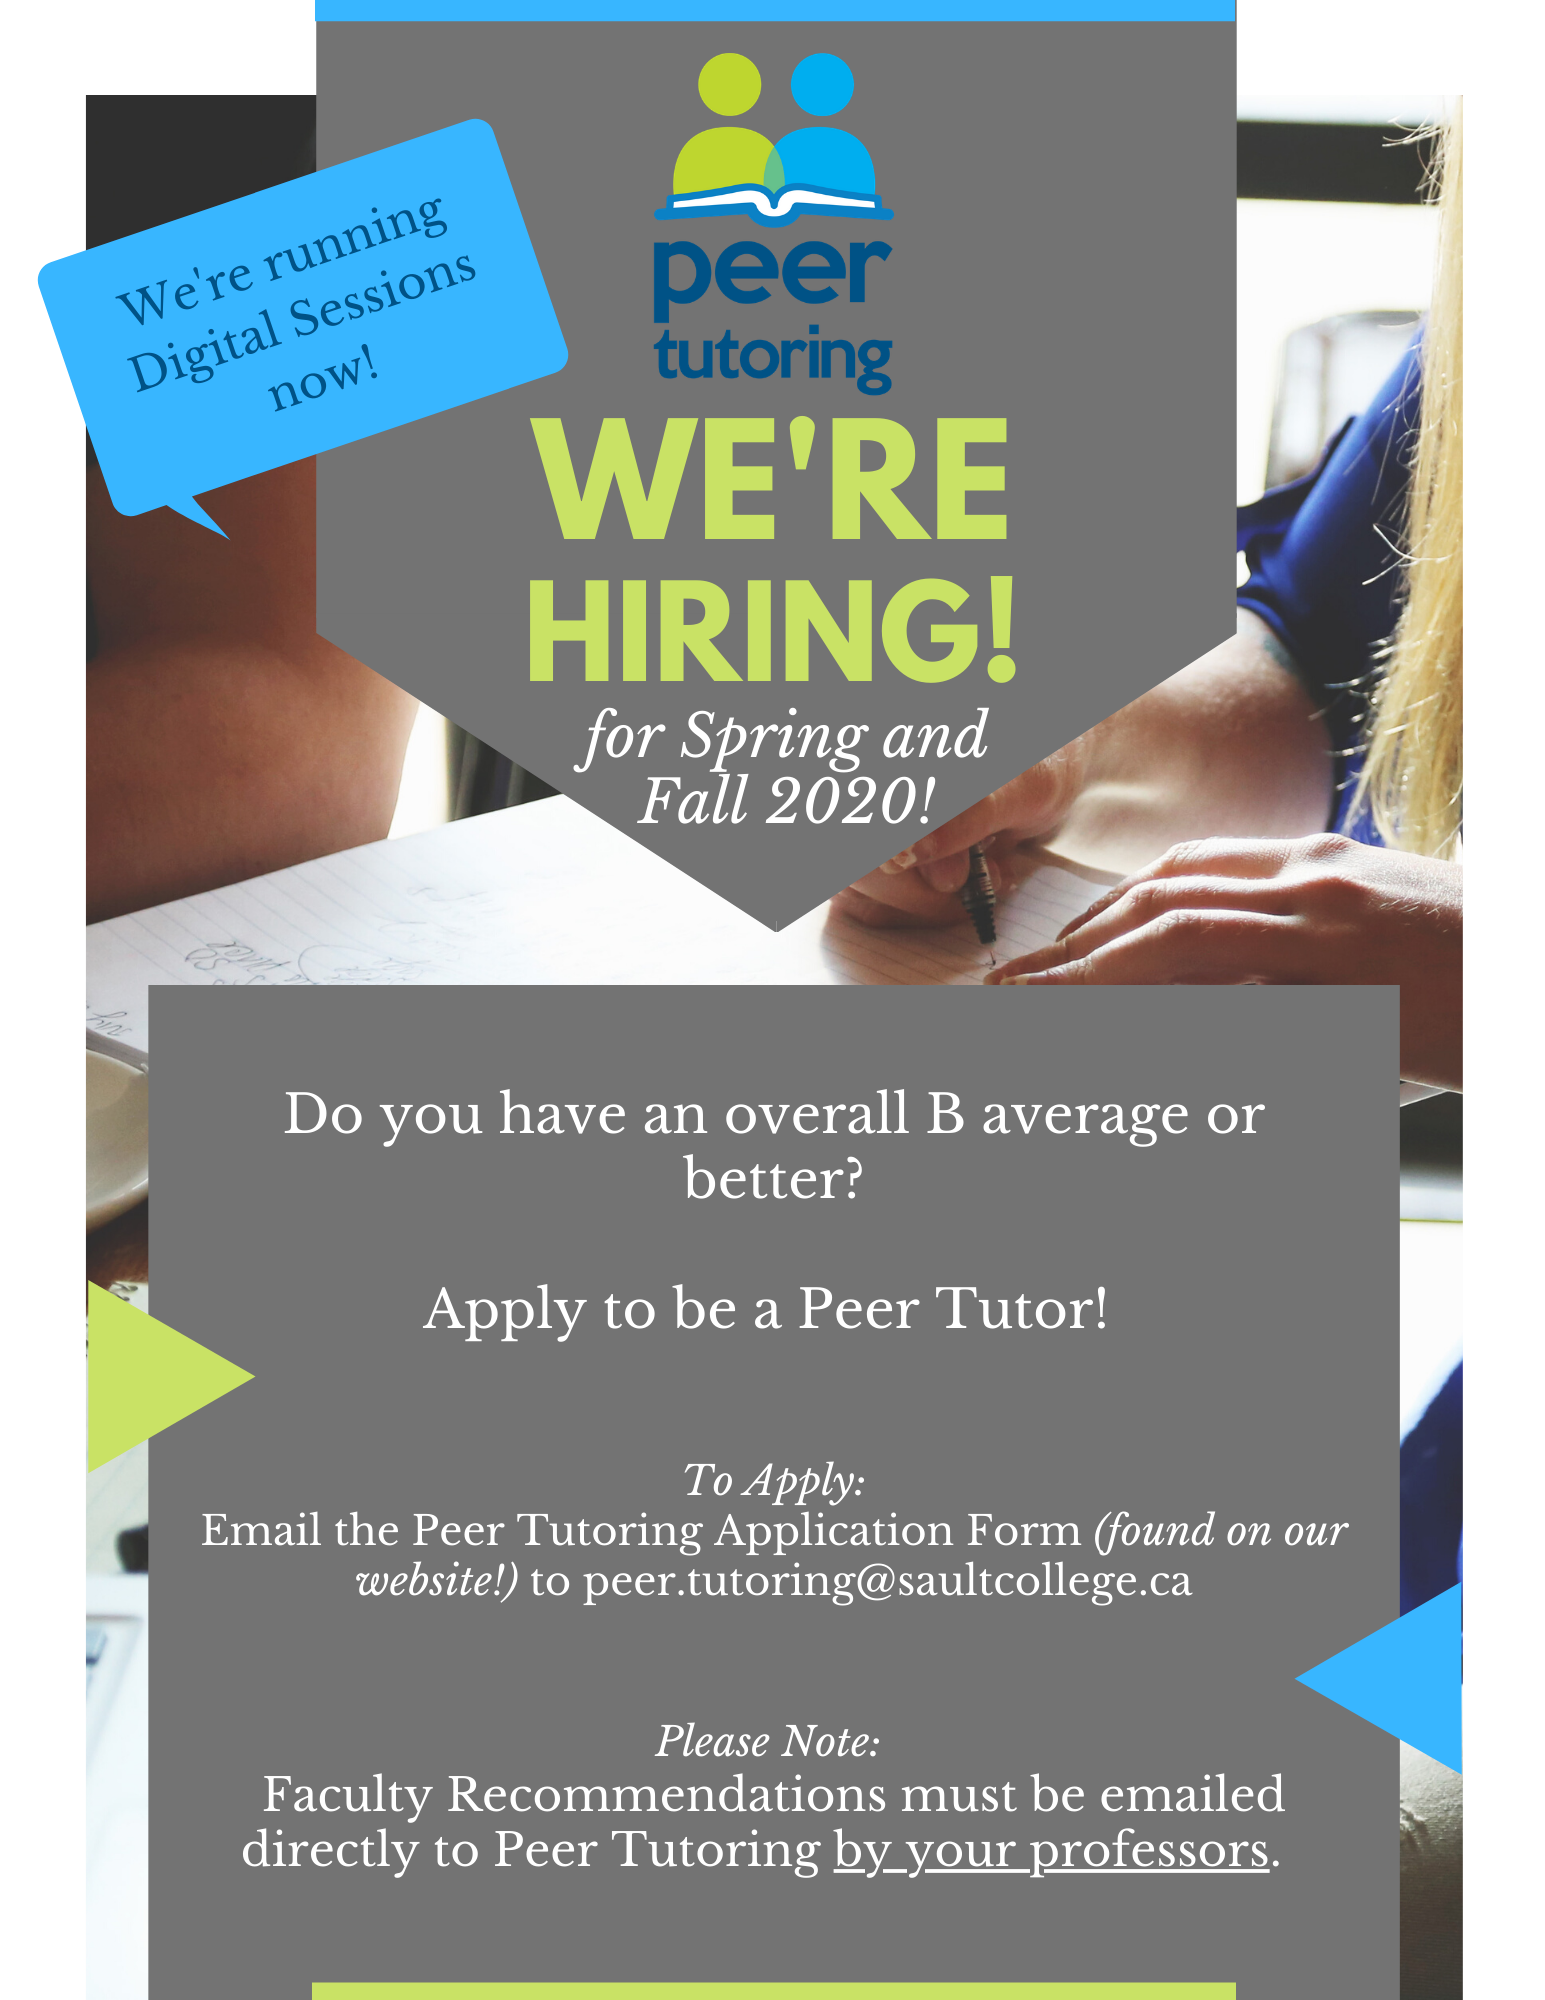 Peer Tutoring - We're Hiring for Spring and Fall 2020